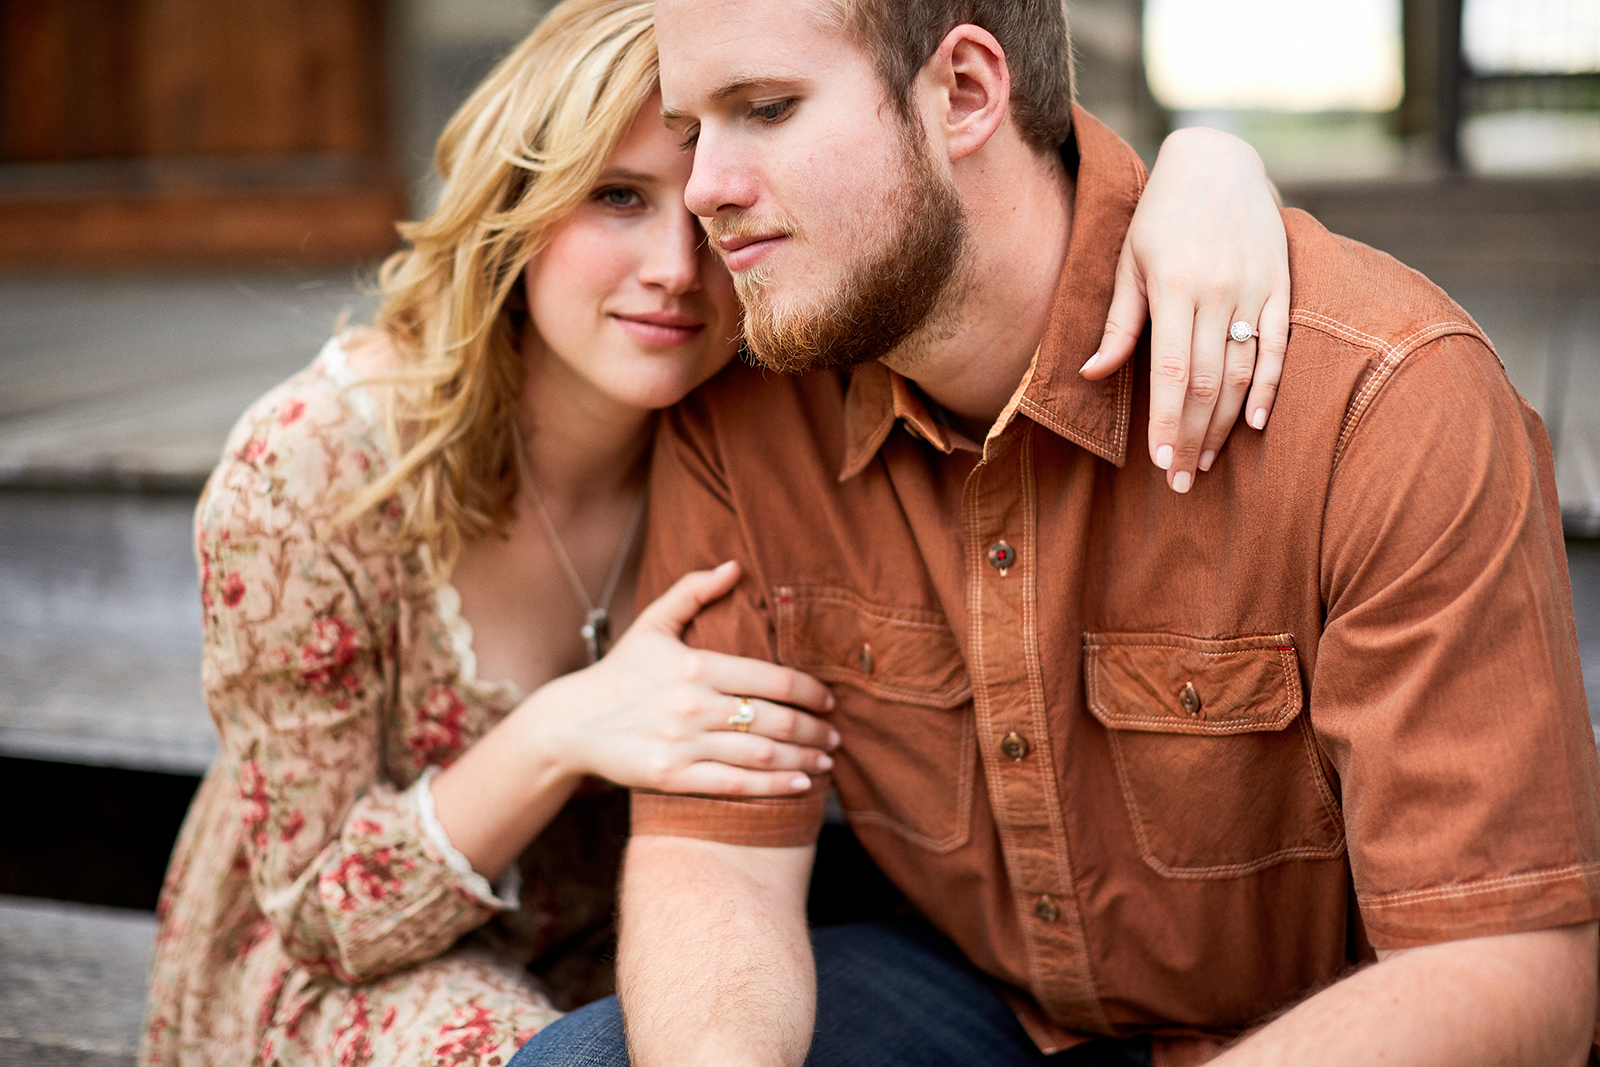 Daniel Boone Home Engagement Session in St Charles County by Oldani Photography St. Louis Wedding Photographers37.jpg